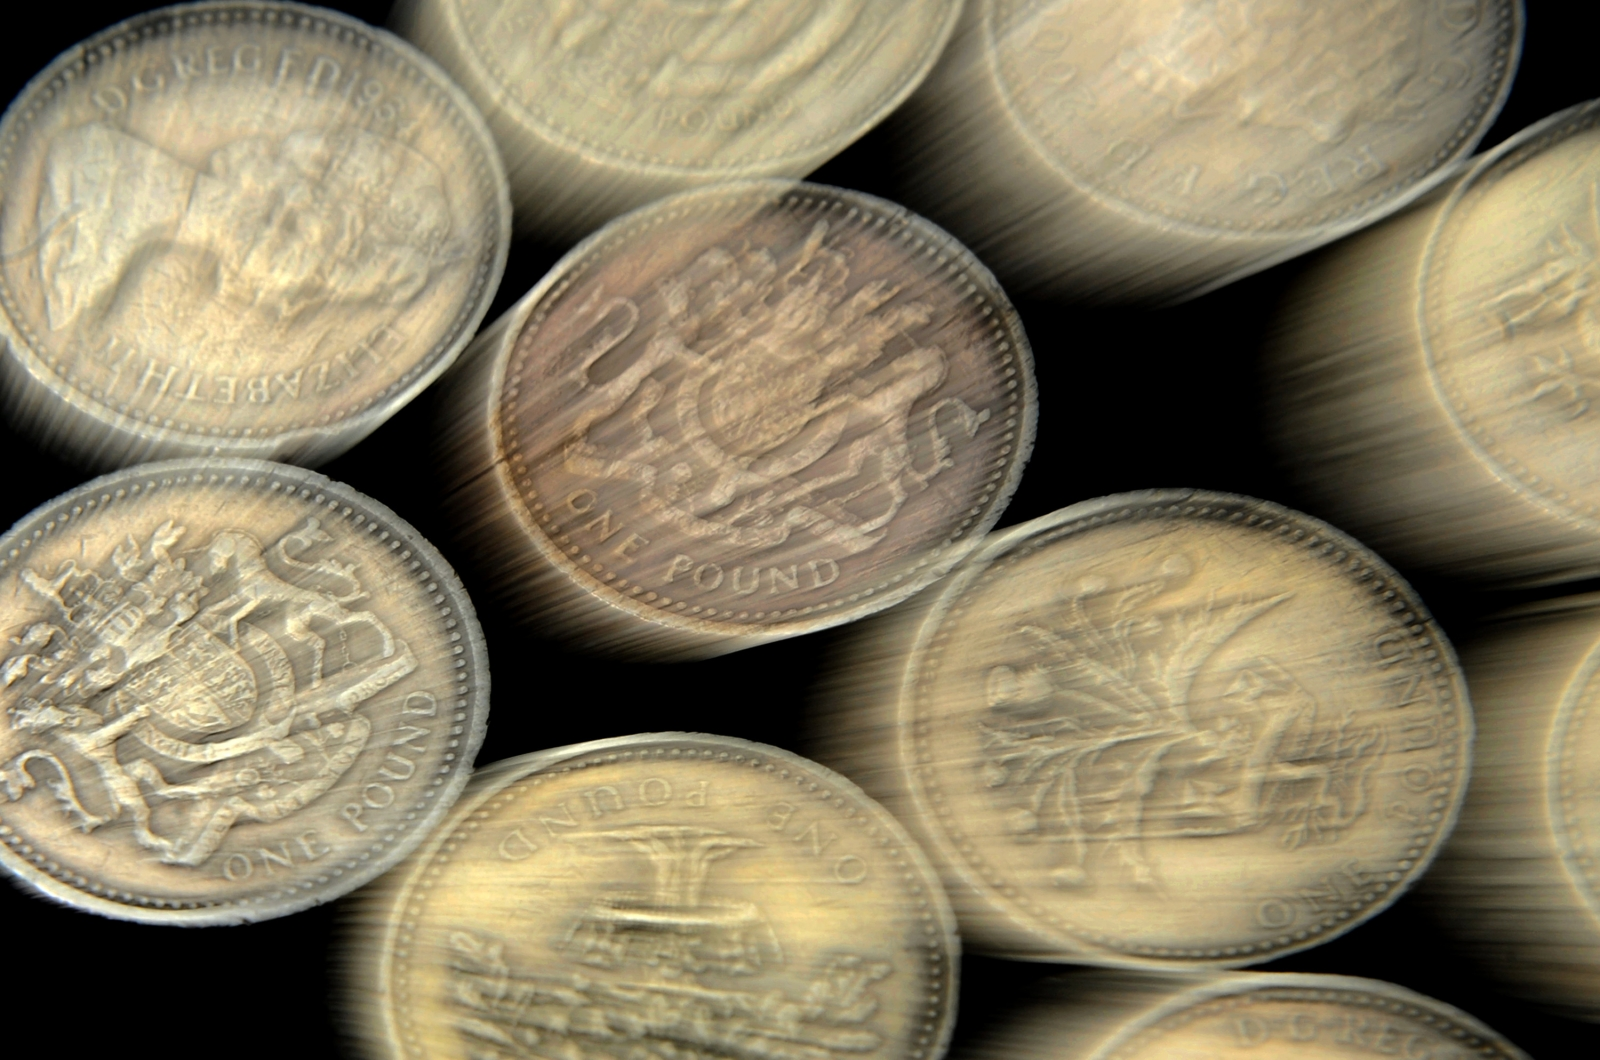 Since the introduction of the pound coin in 1983, the design on the other side from the Queen has changed every year in an attempt to stop fraud